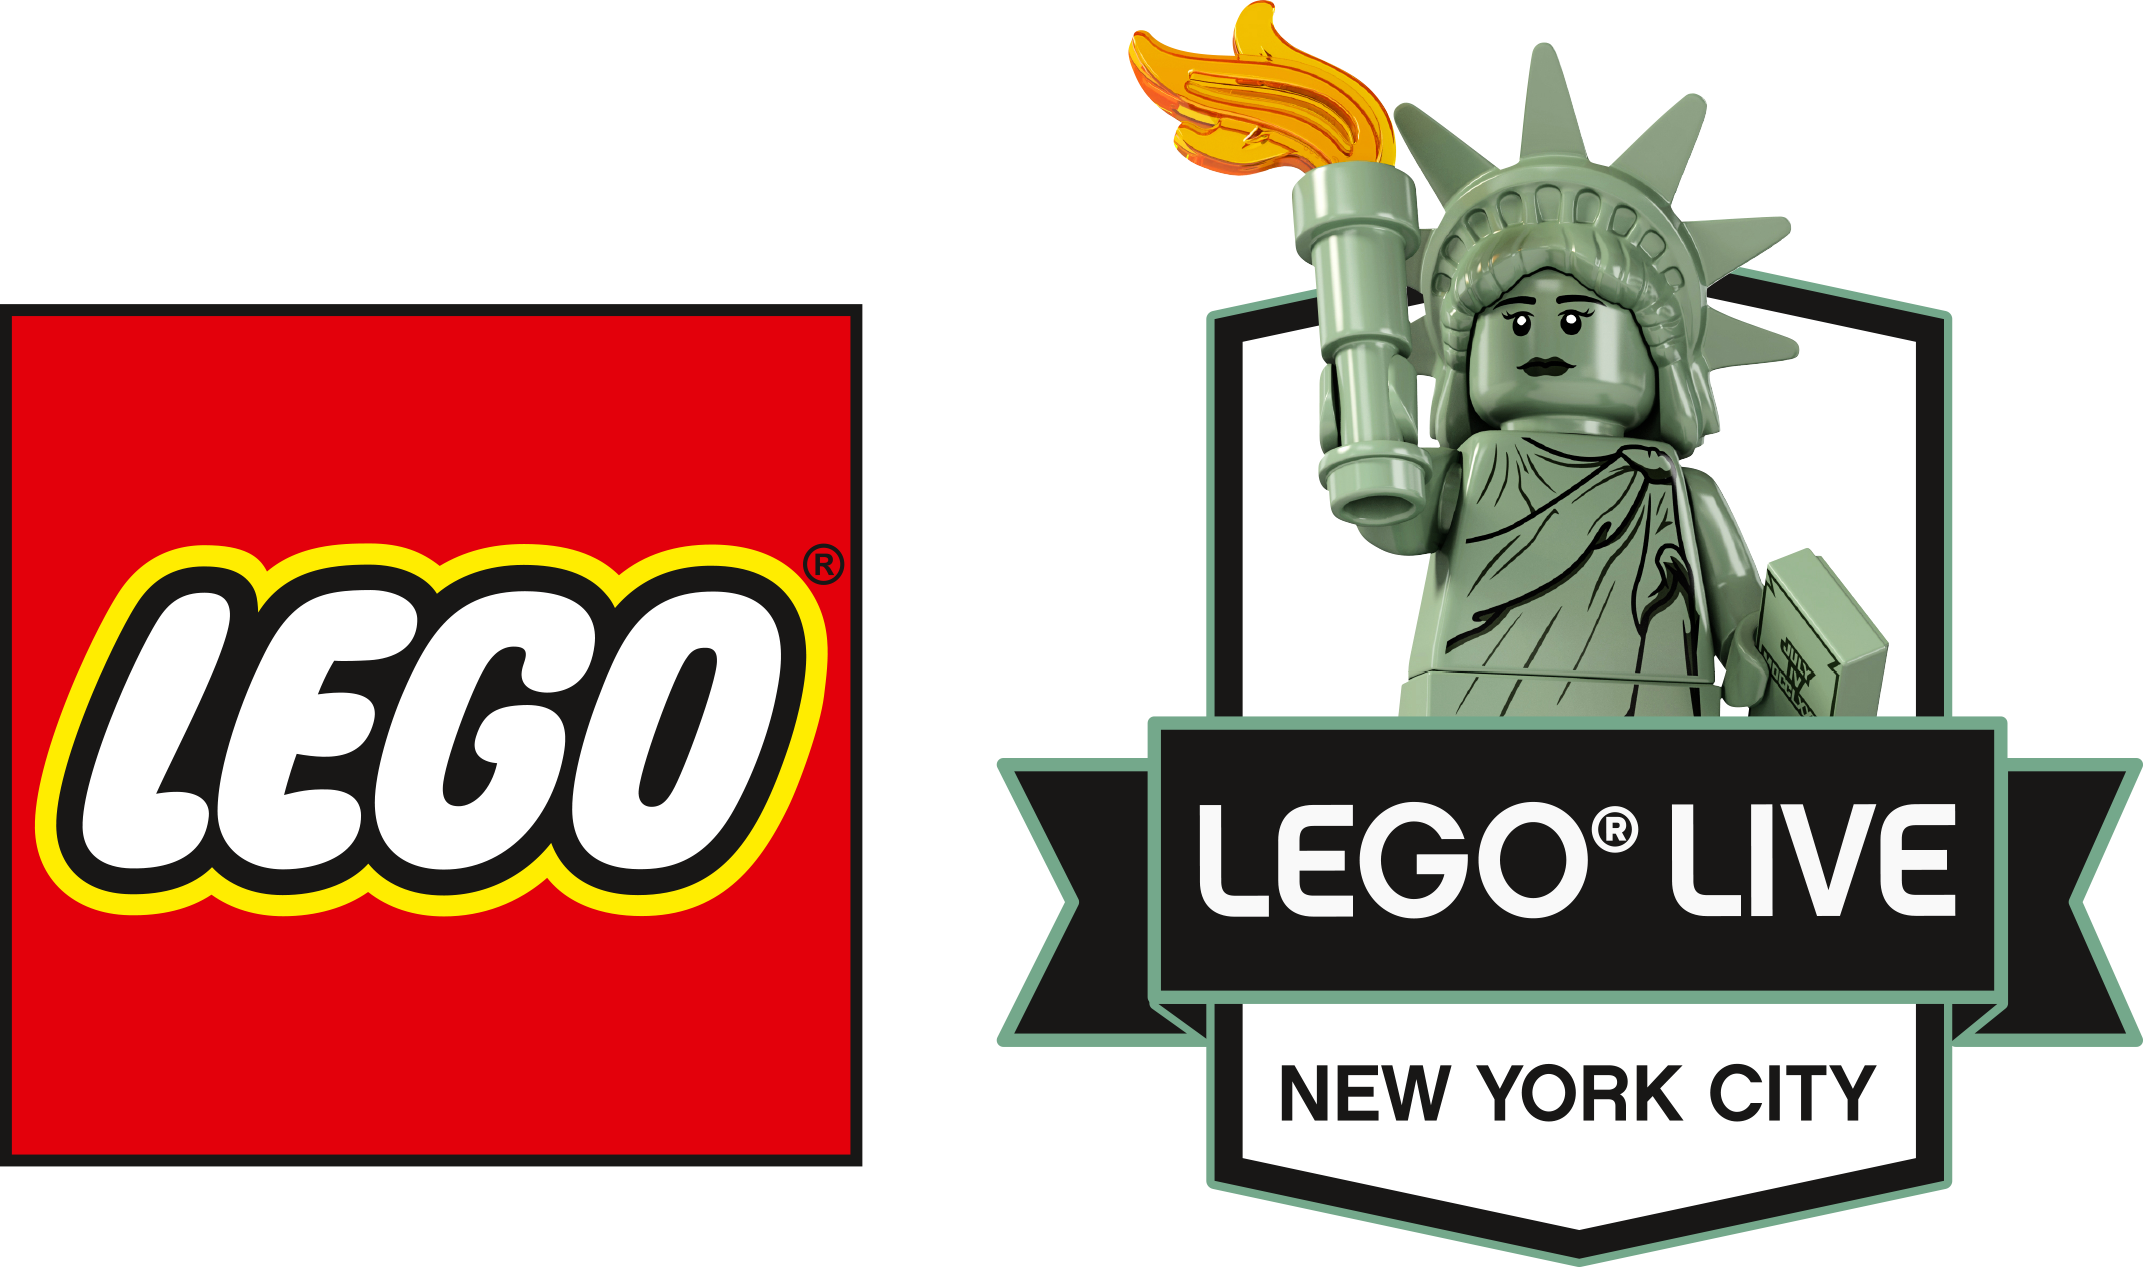 February clipart presidents day. Lego live nyc family